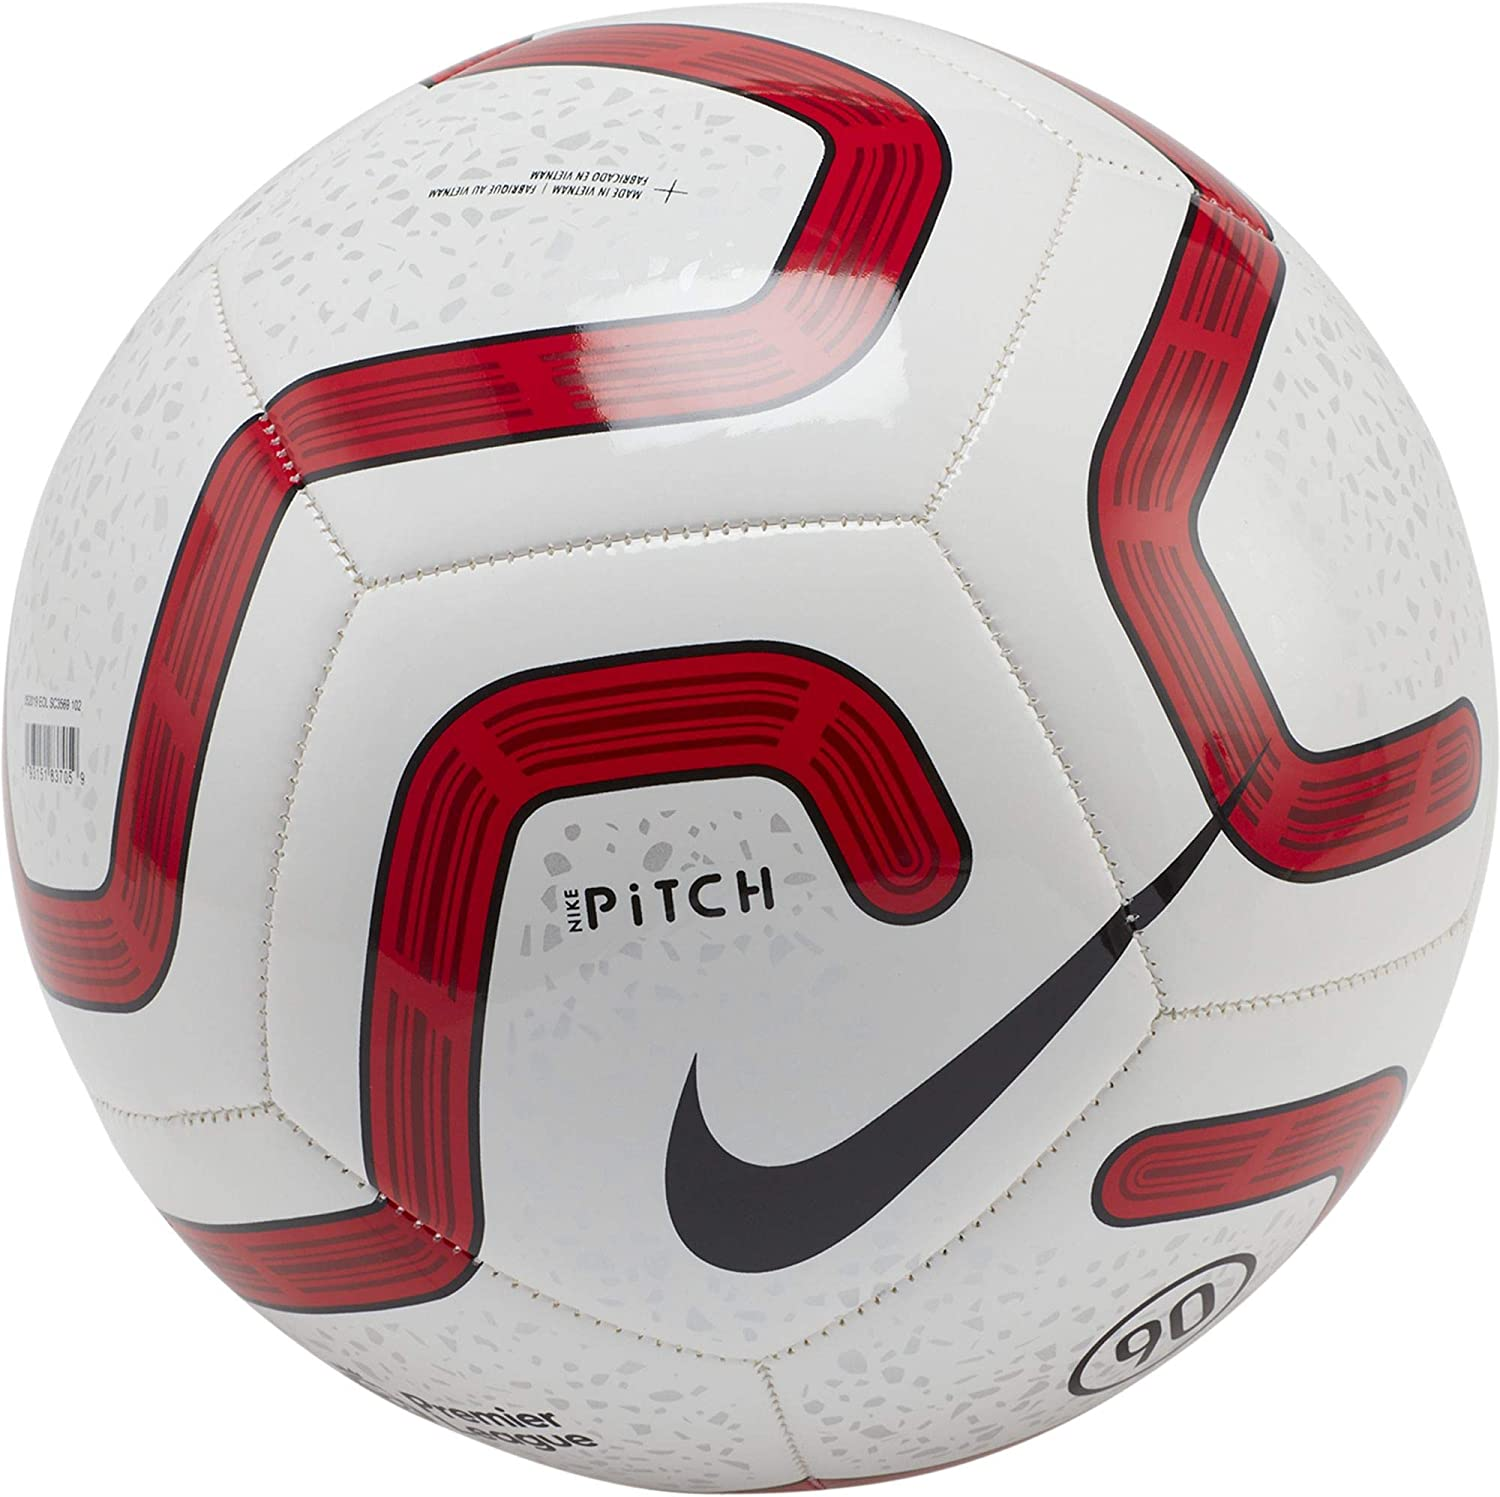 Amazon.com : Nike Premier League Pitch Soccer Ball- (White/Red) : Sports &  Outdoors